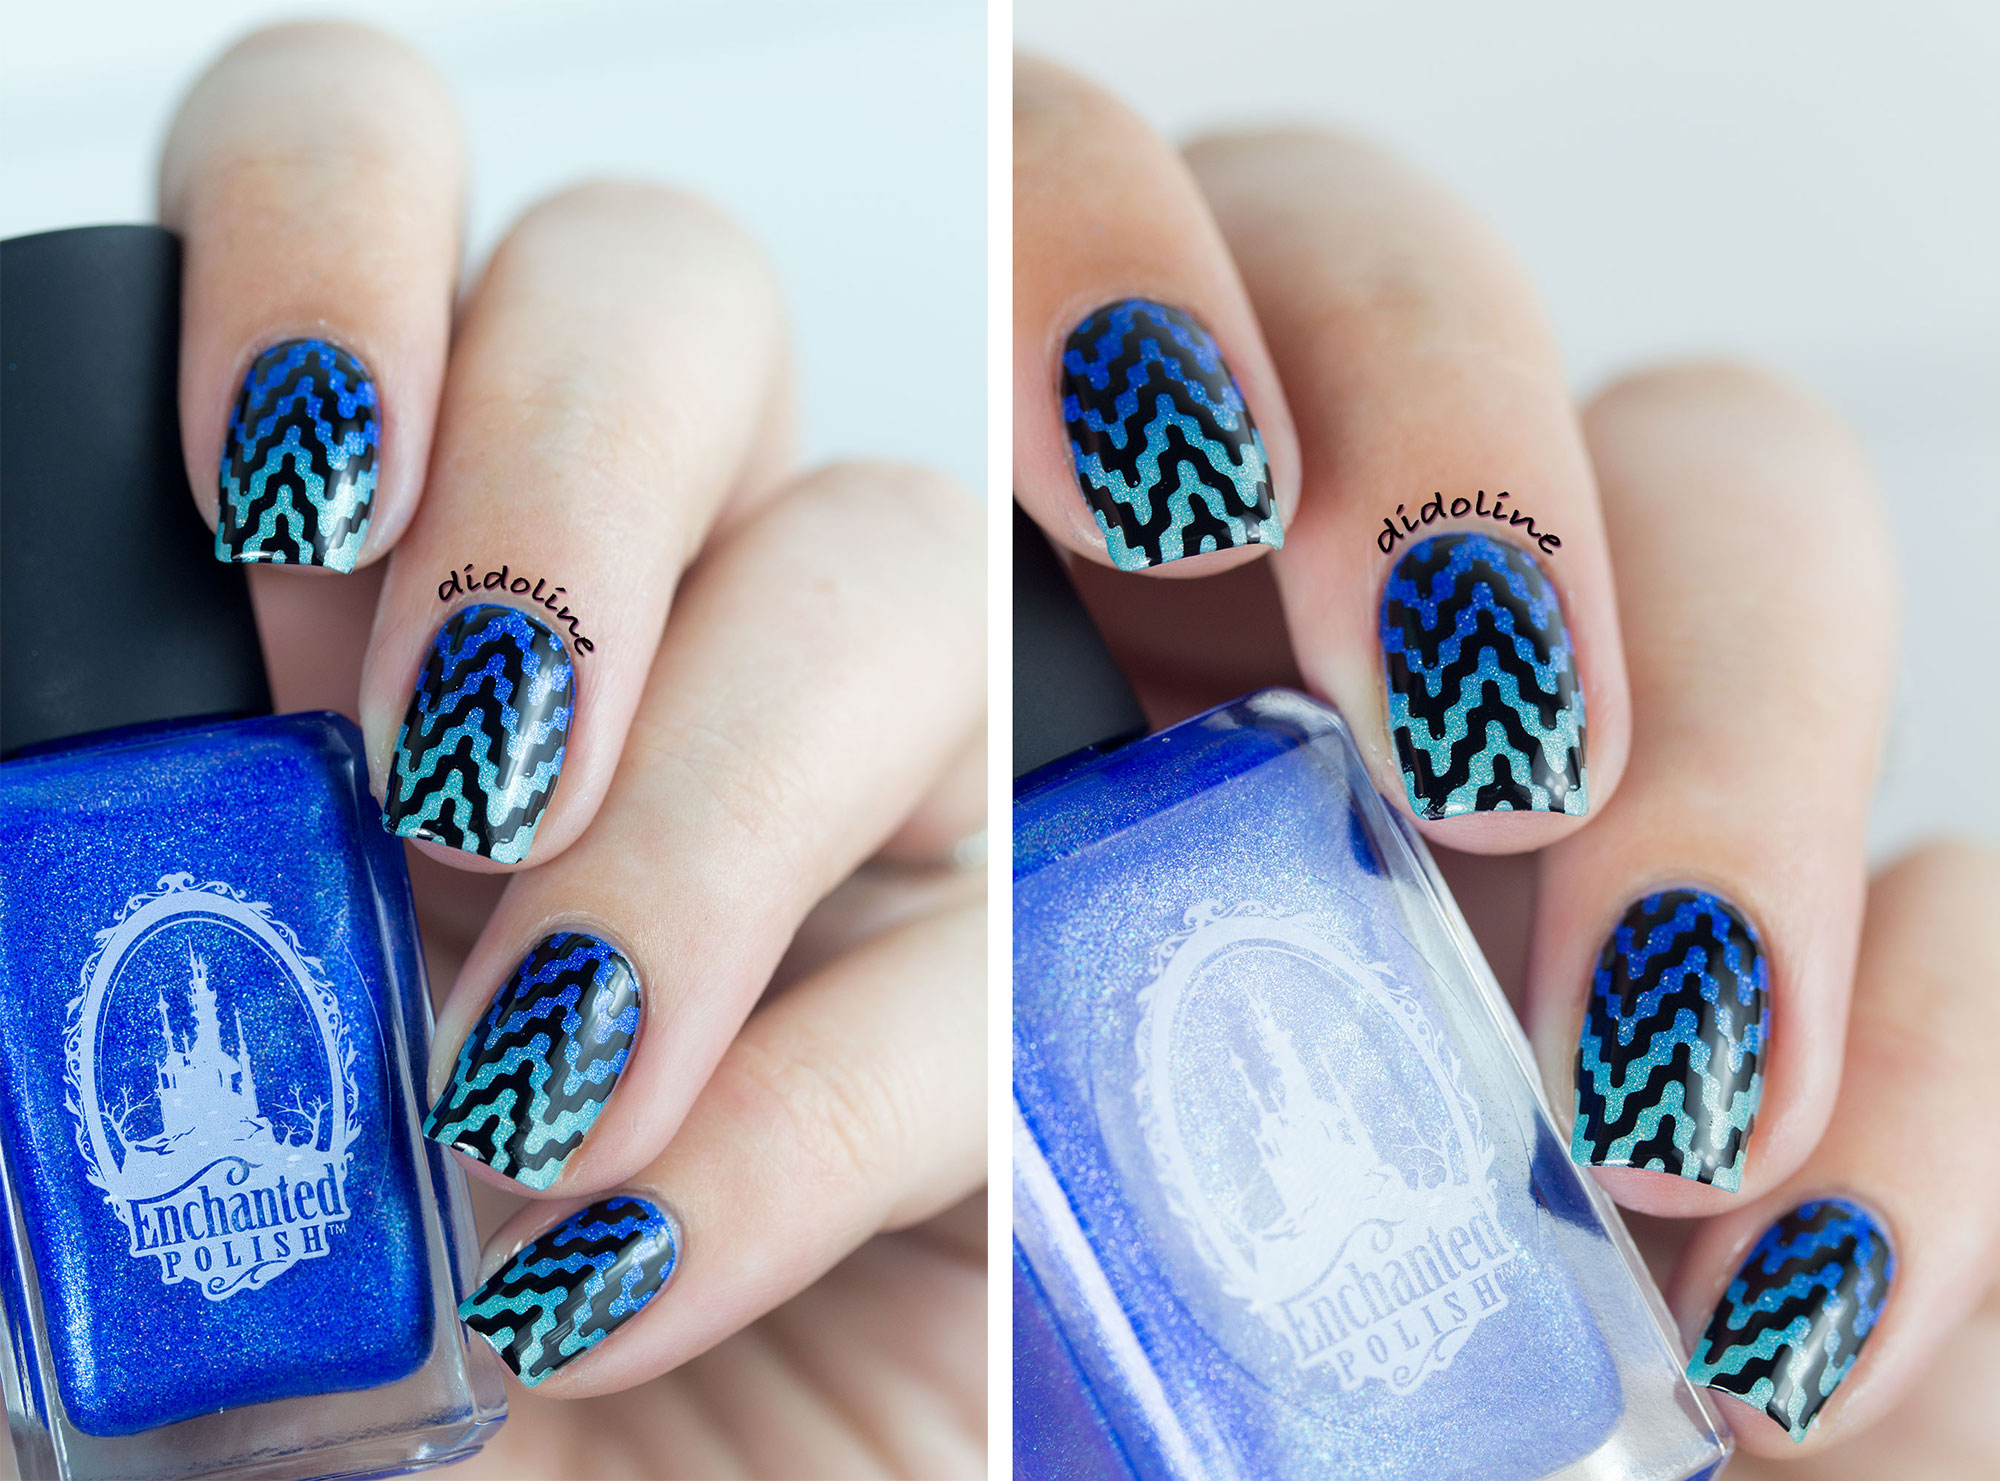 Enchanted Polish - Gradient nails and stamping with MoYou London